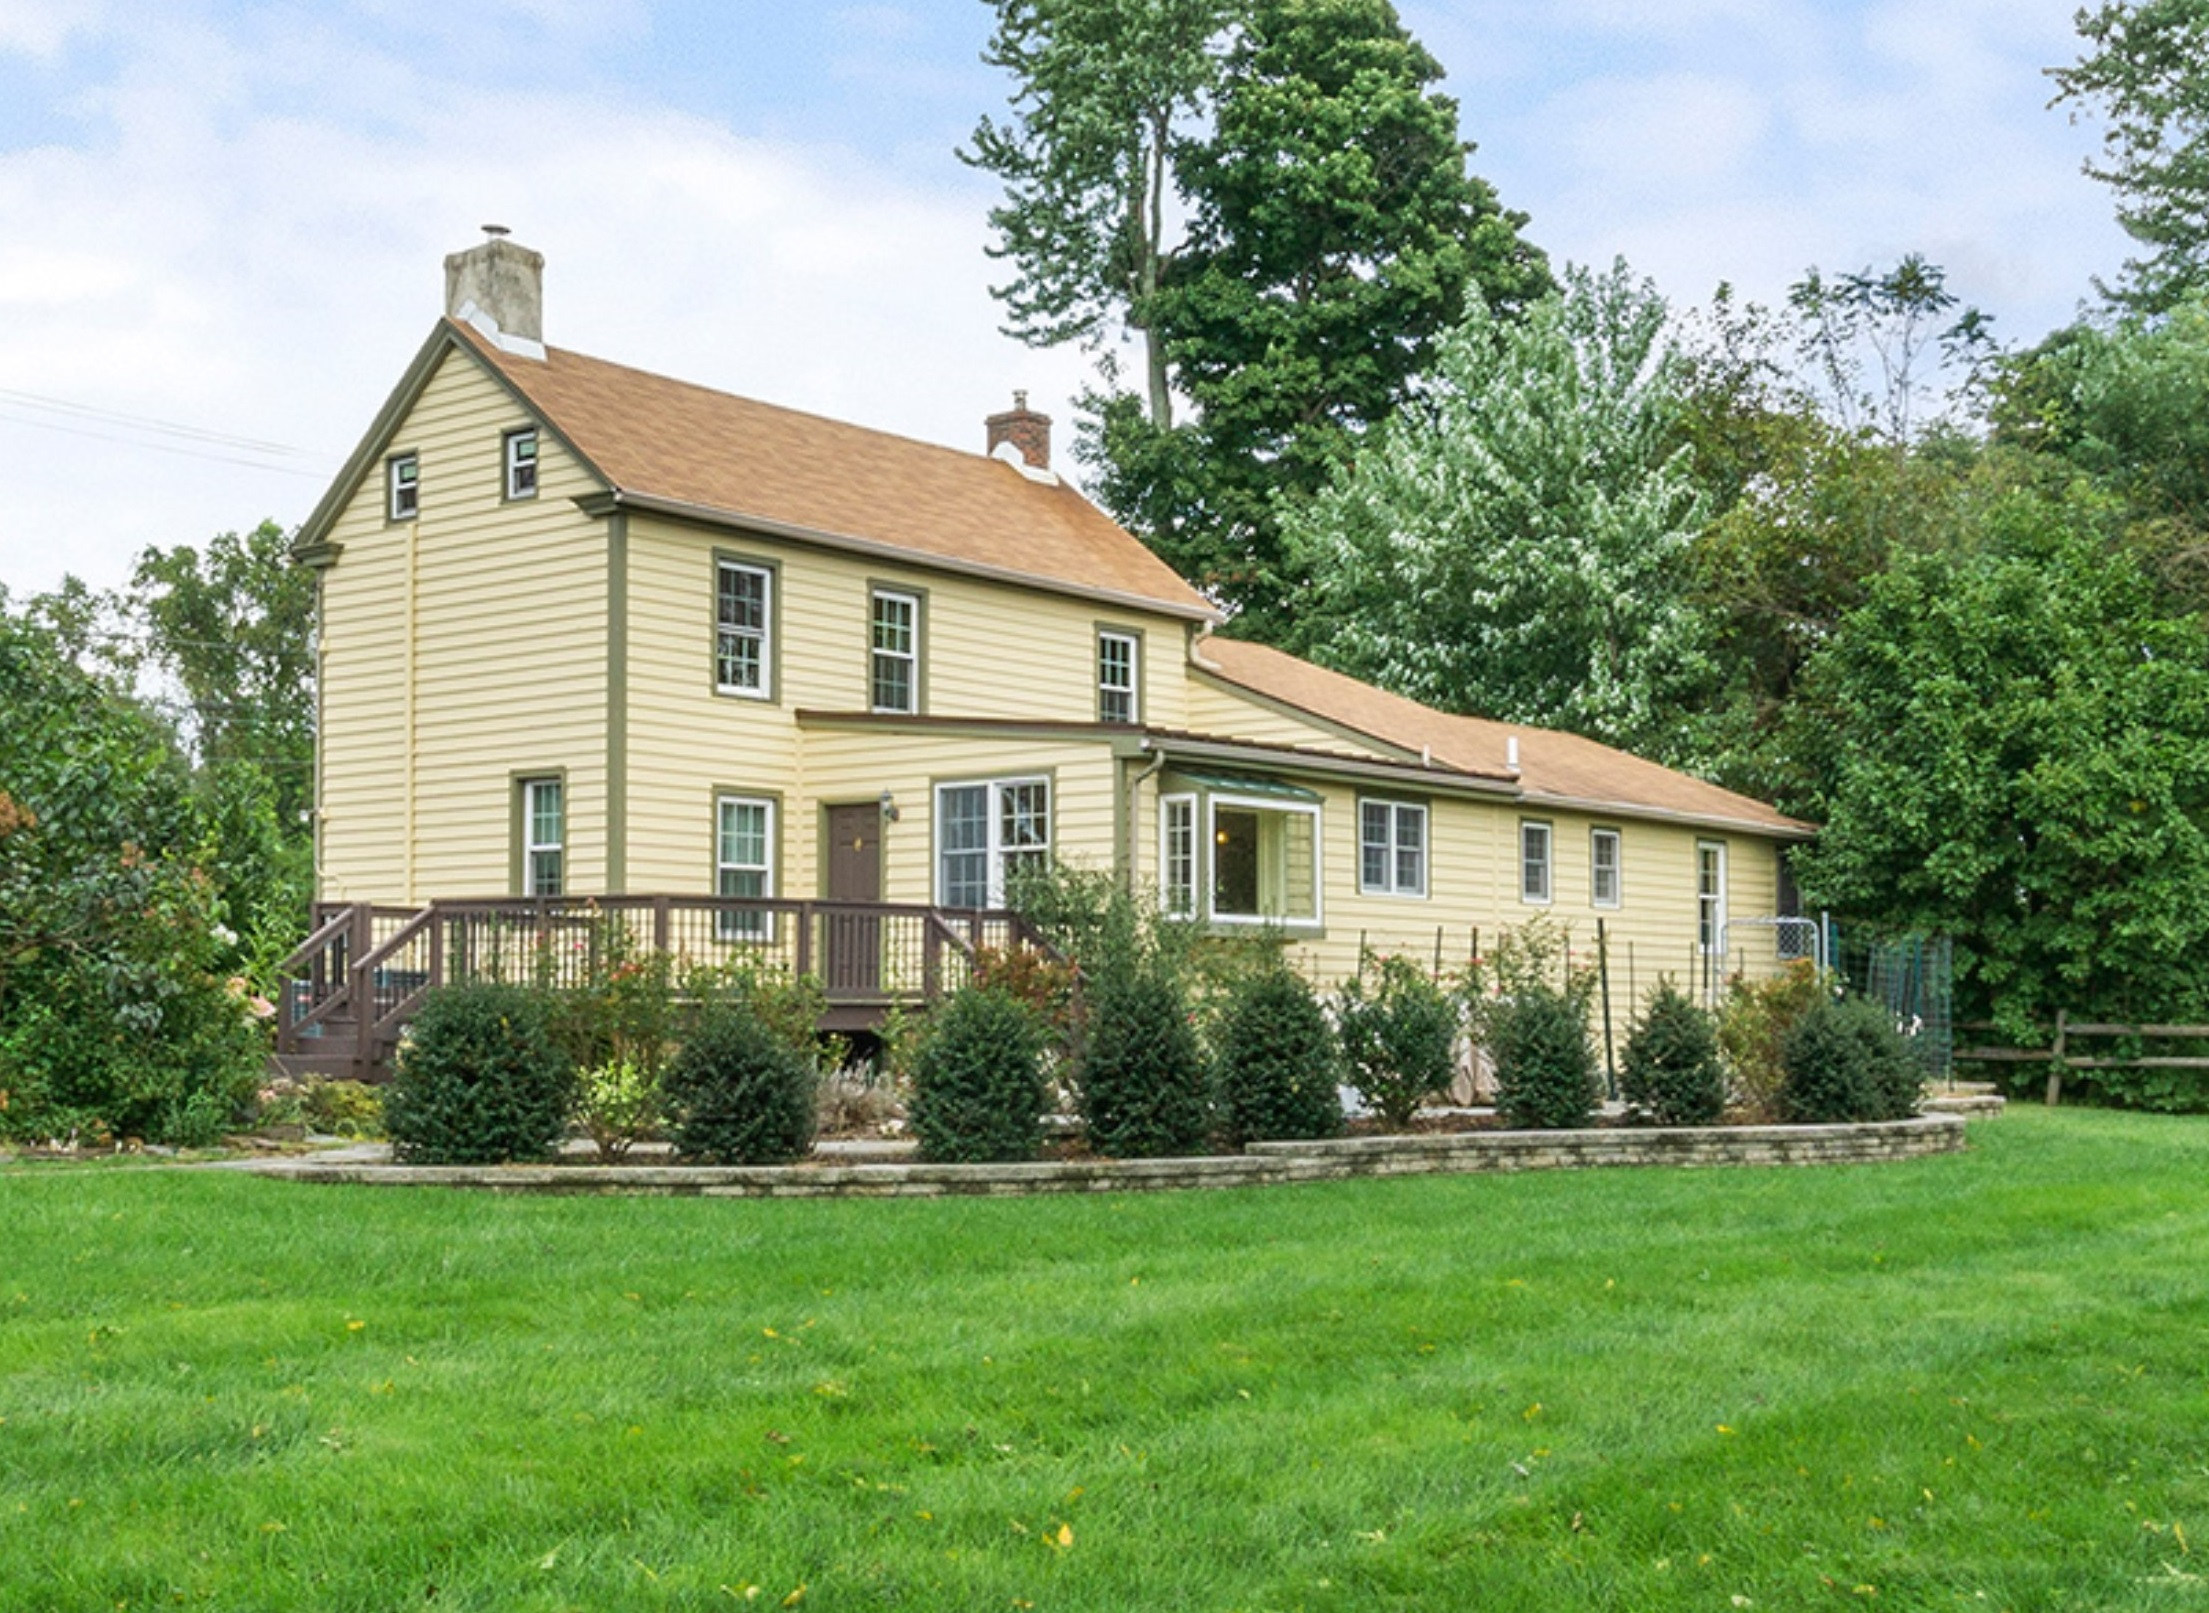 Historic Homes In Bucks | Steve Walny | New Hope Realtor